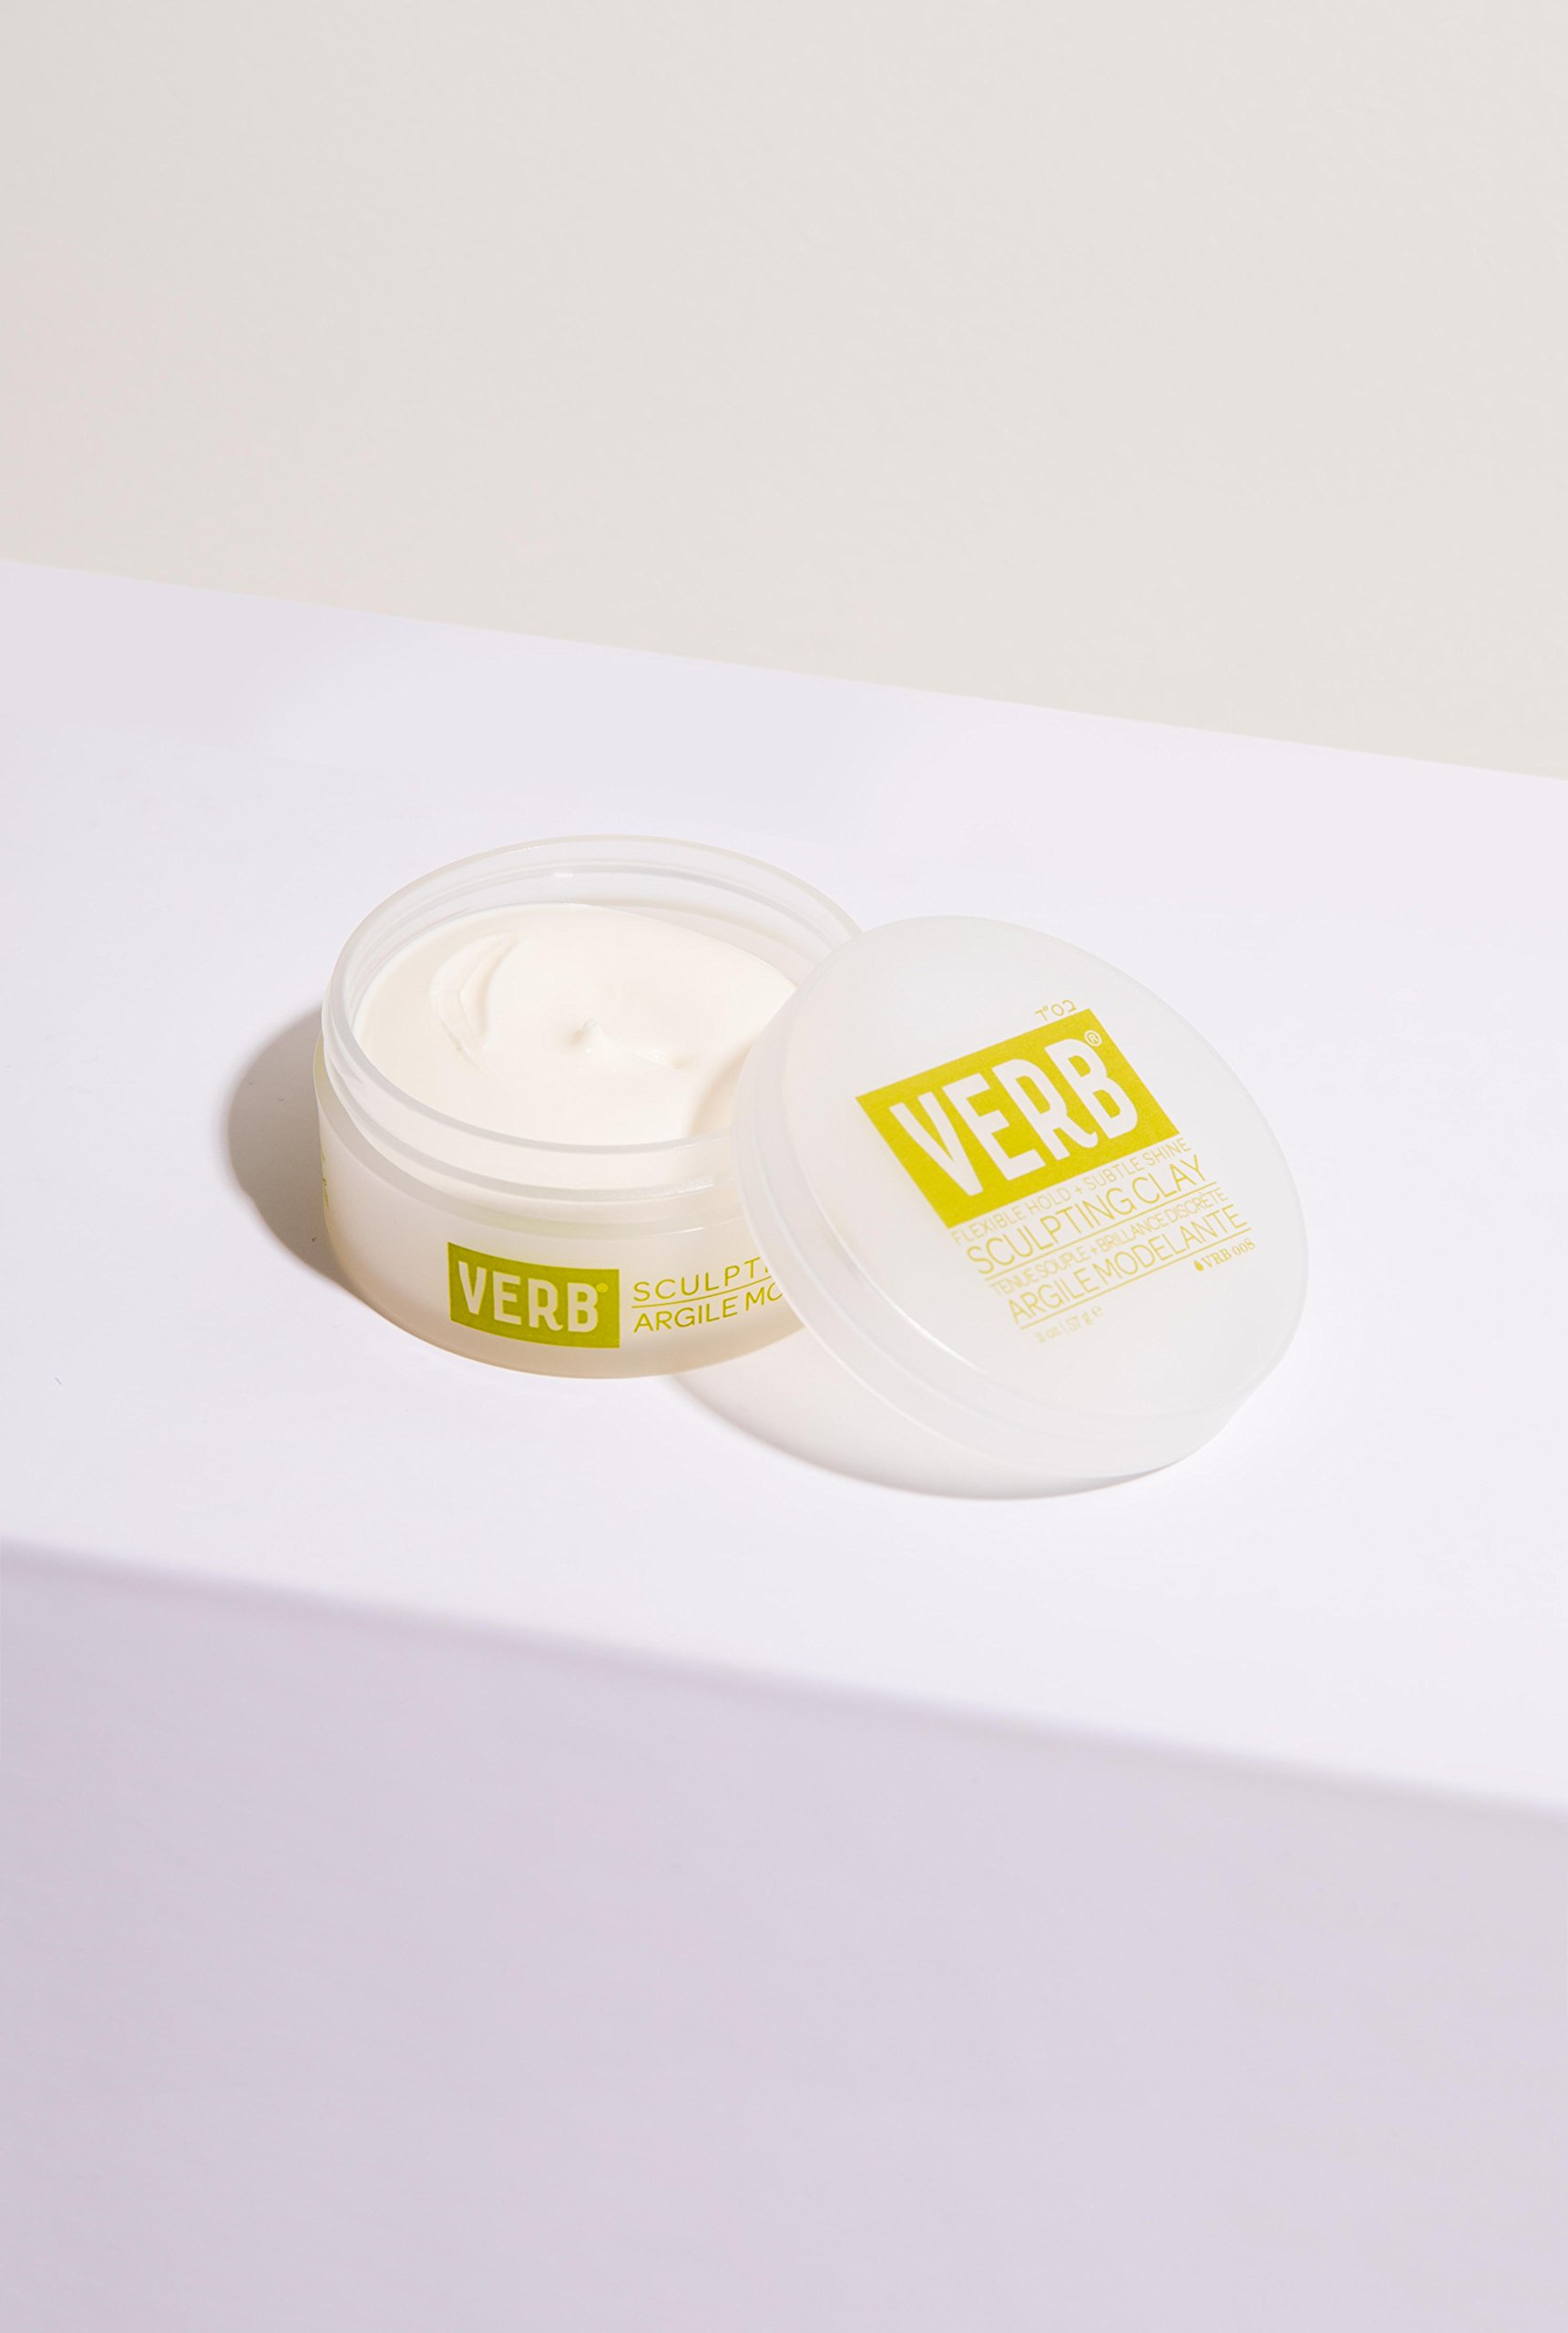 Verb Sculpting Clay - Flexible Hold + Subtle Shine 2oz by verb (Image #2)